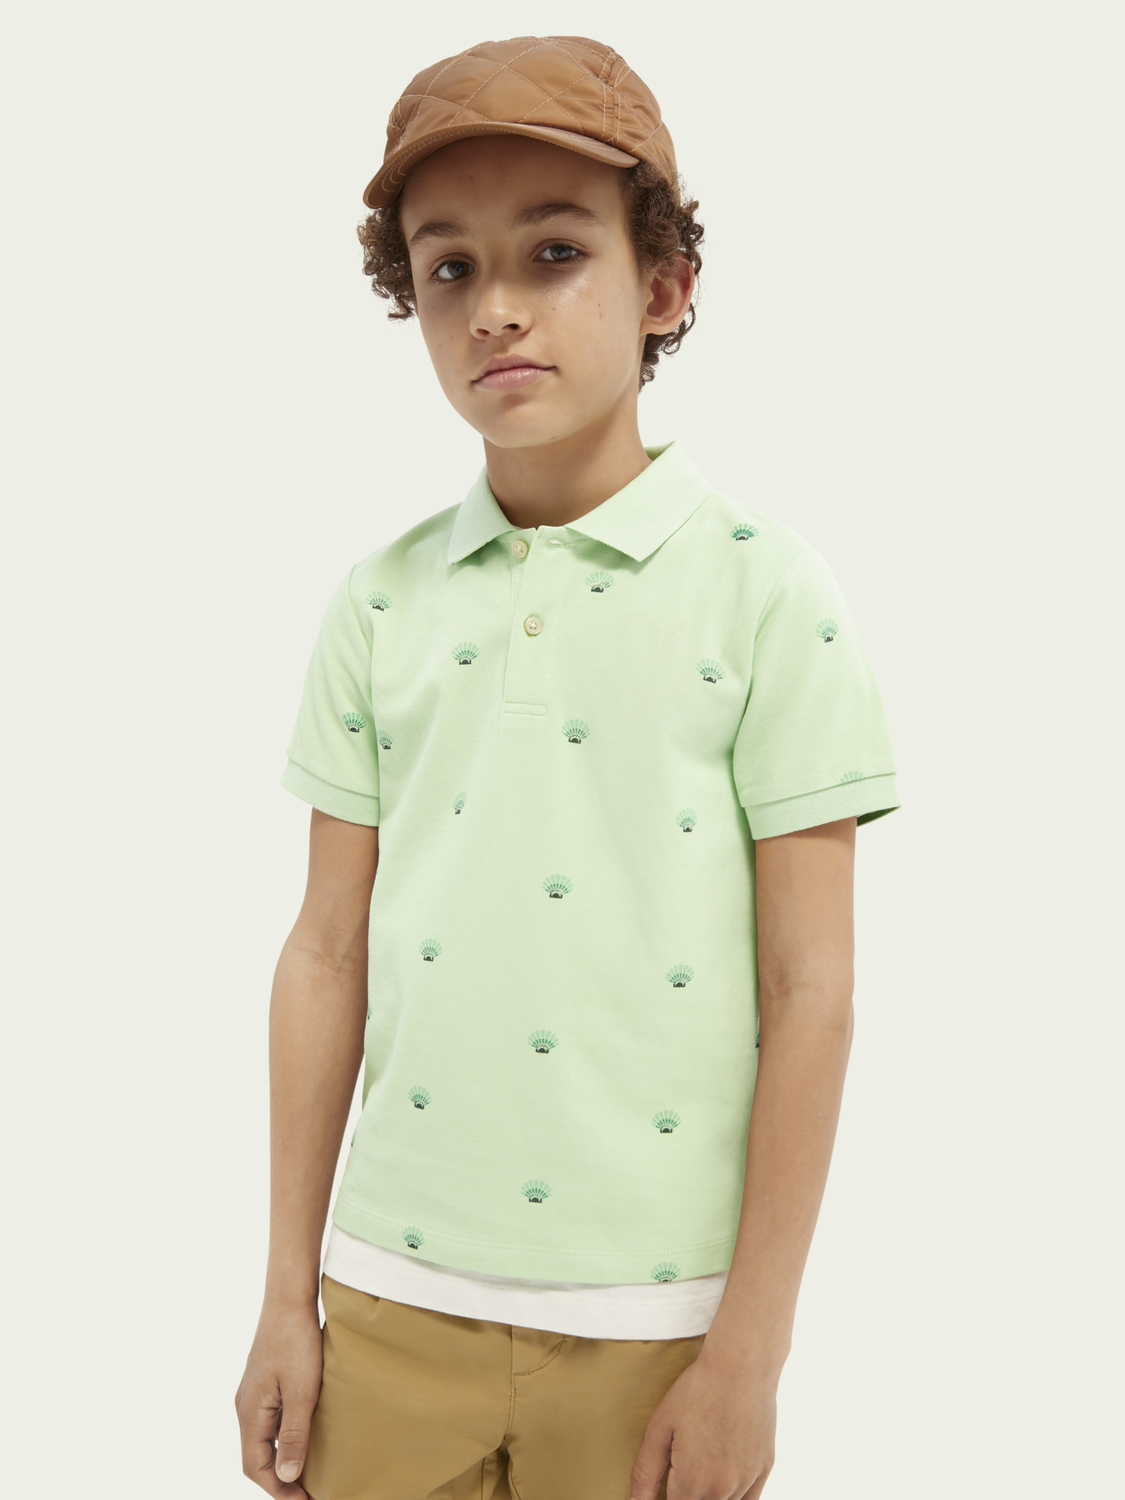 Kids Printed cotton short-sleeved polo